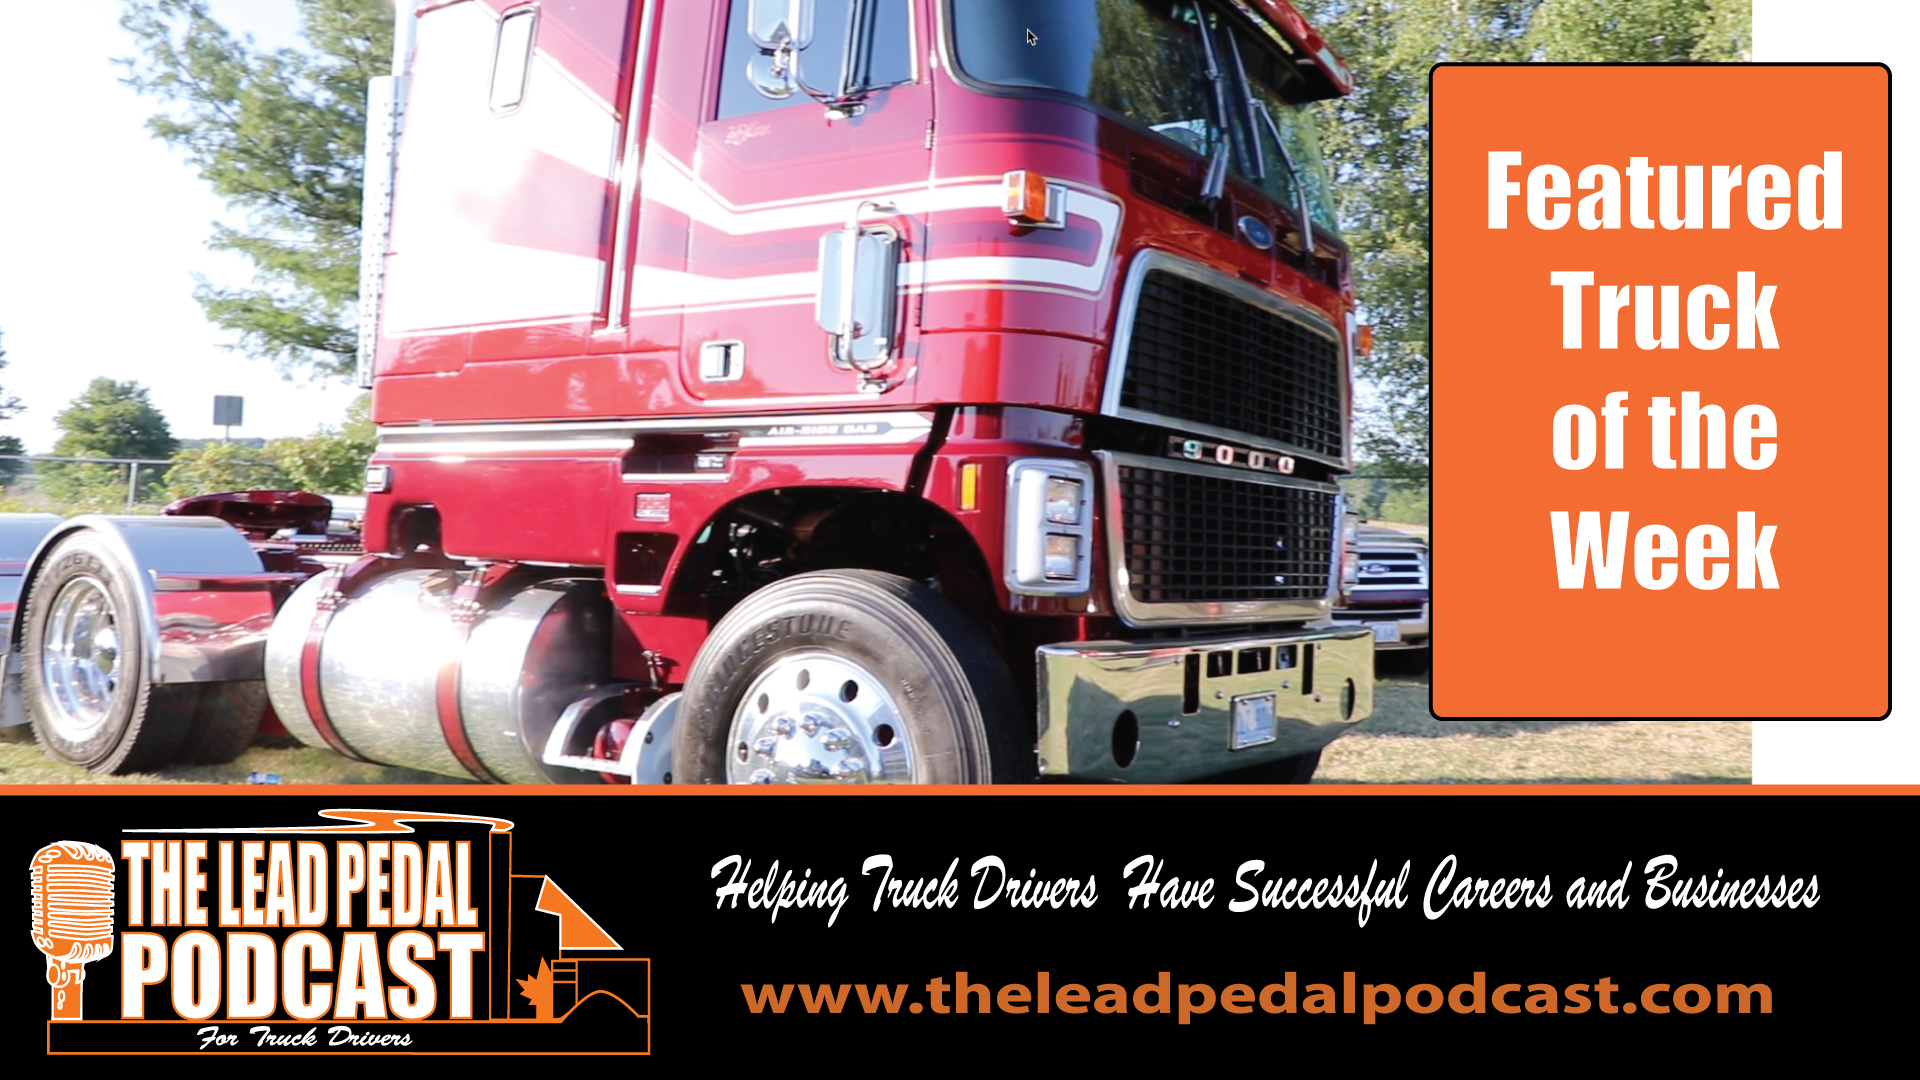 LP627 Featured Truck of the Week-Ford CL9000 Cabover